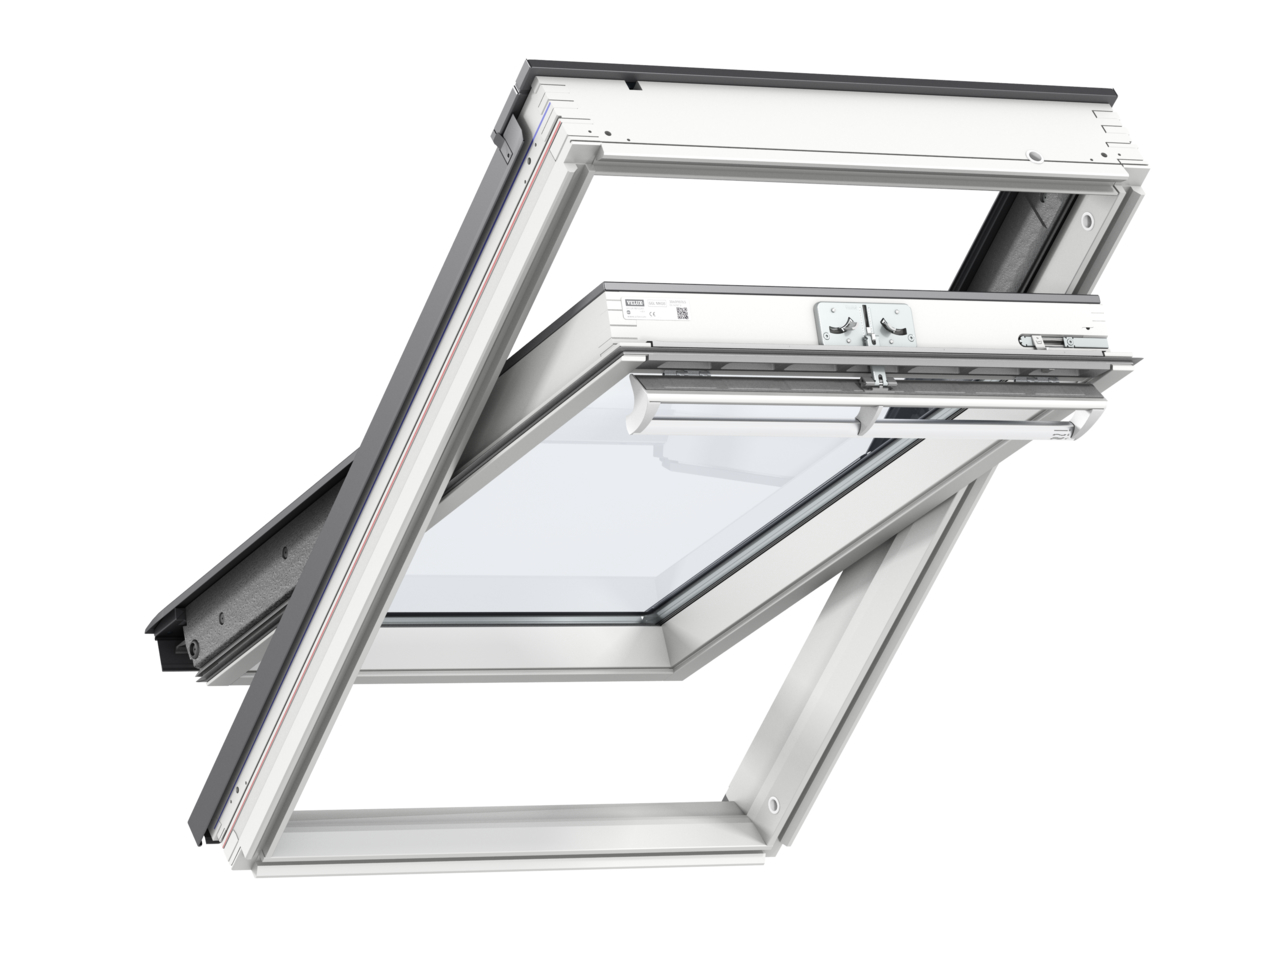 Velux GGL CK06 550 x 1180mm Centre Pivot 66 Pane Roof Window - White Painted